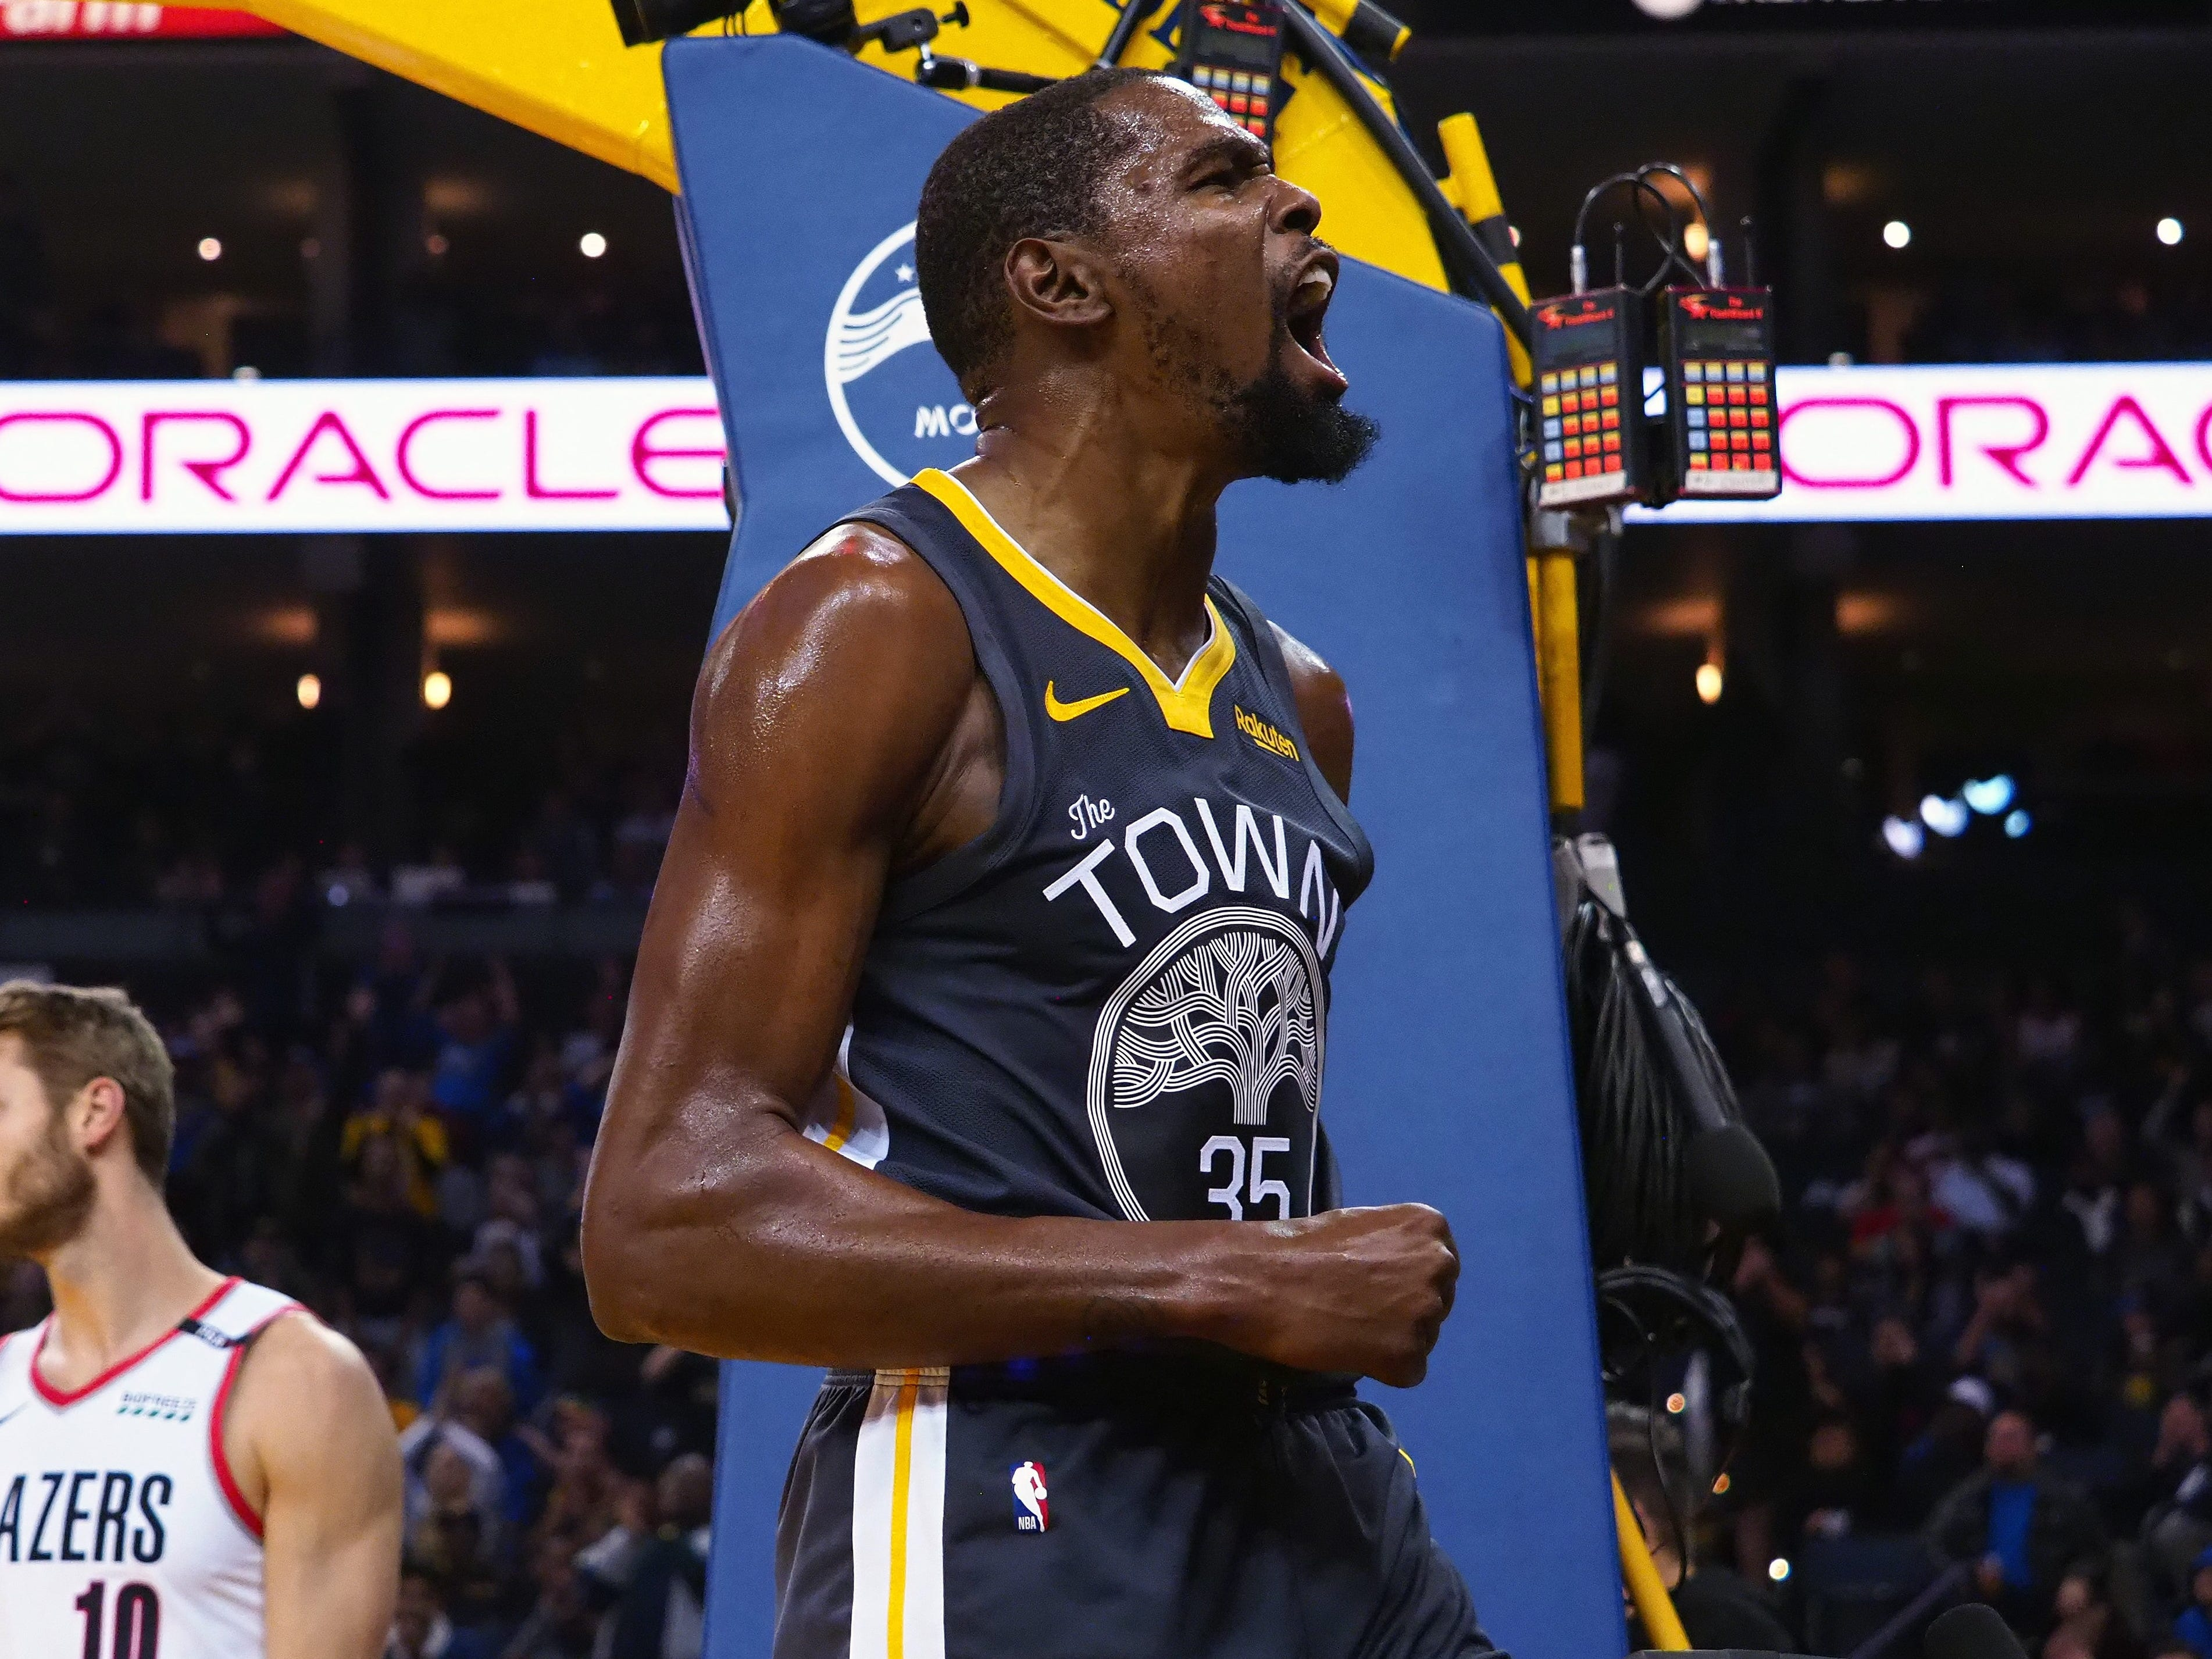 Nov. 23: Warriors forward Kevin Durant was fired up after a big bucket against the Trail Blazers in Oakland.